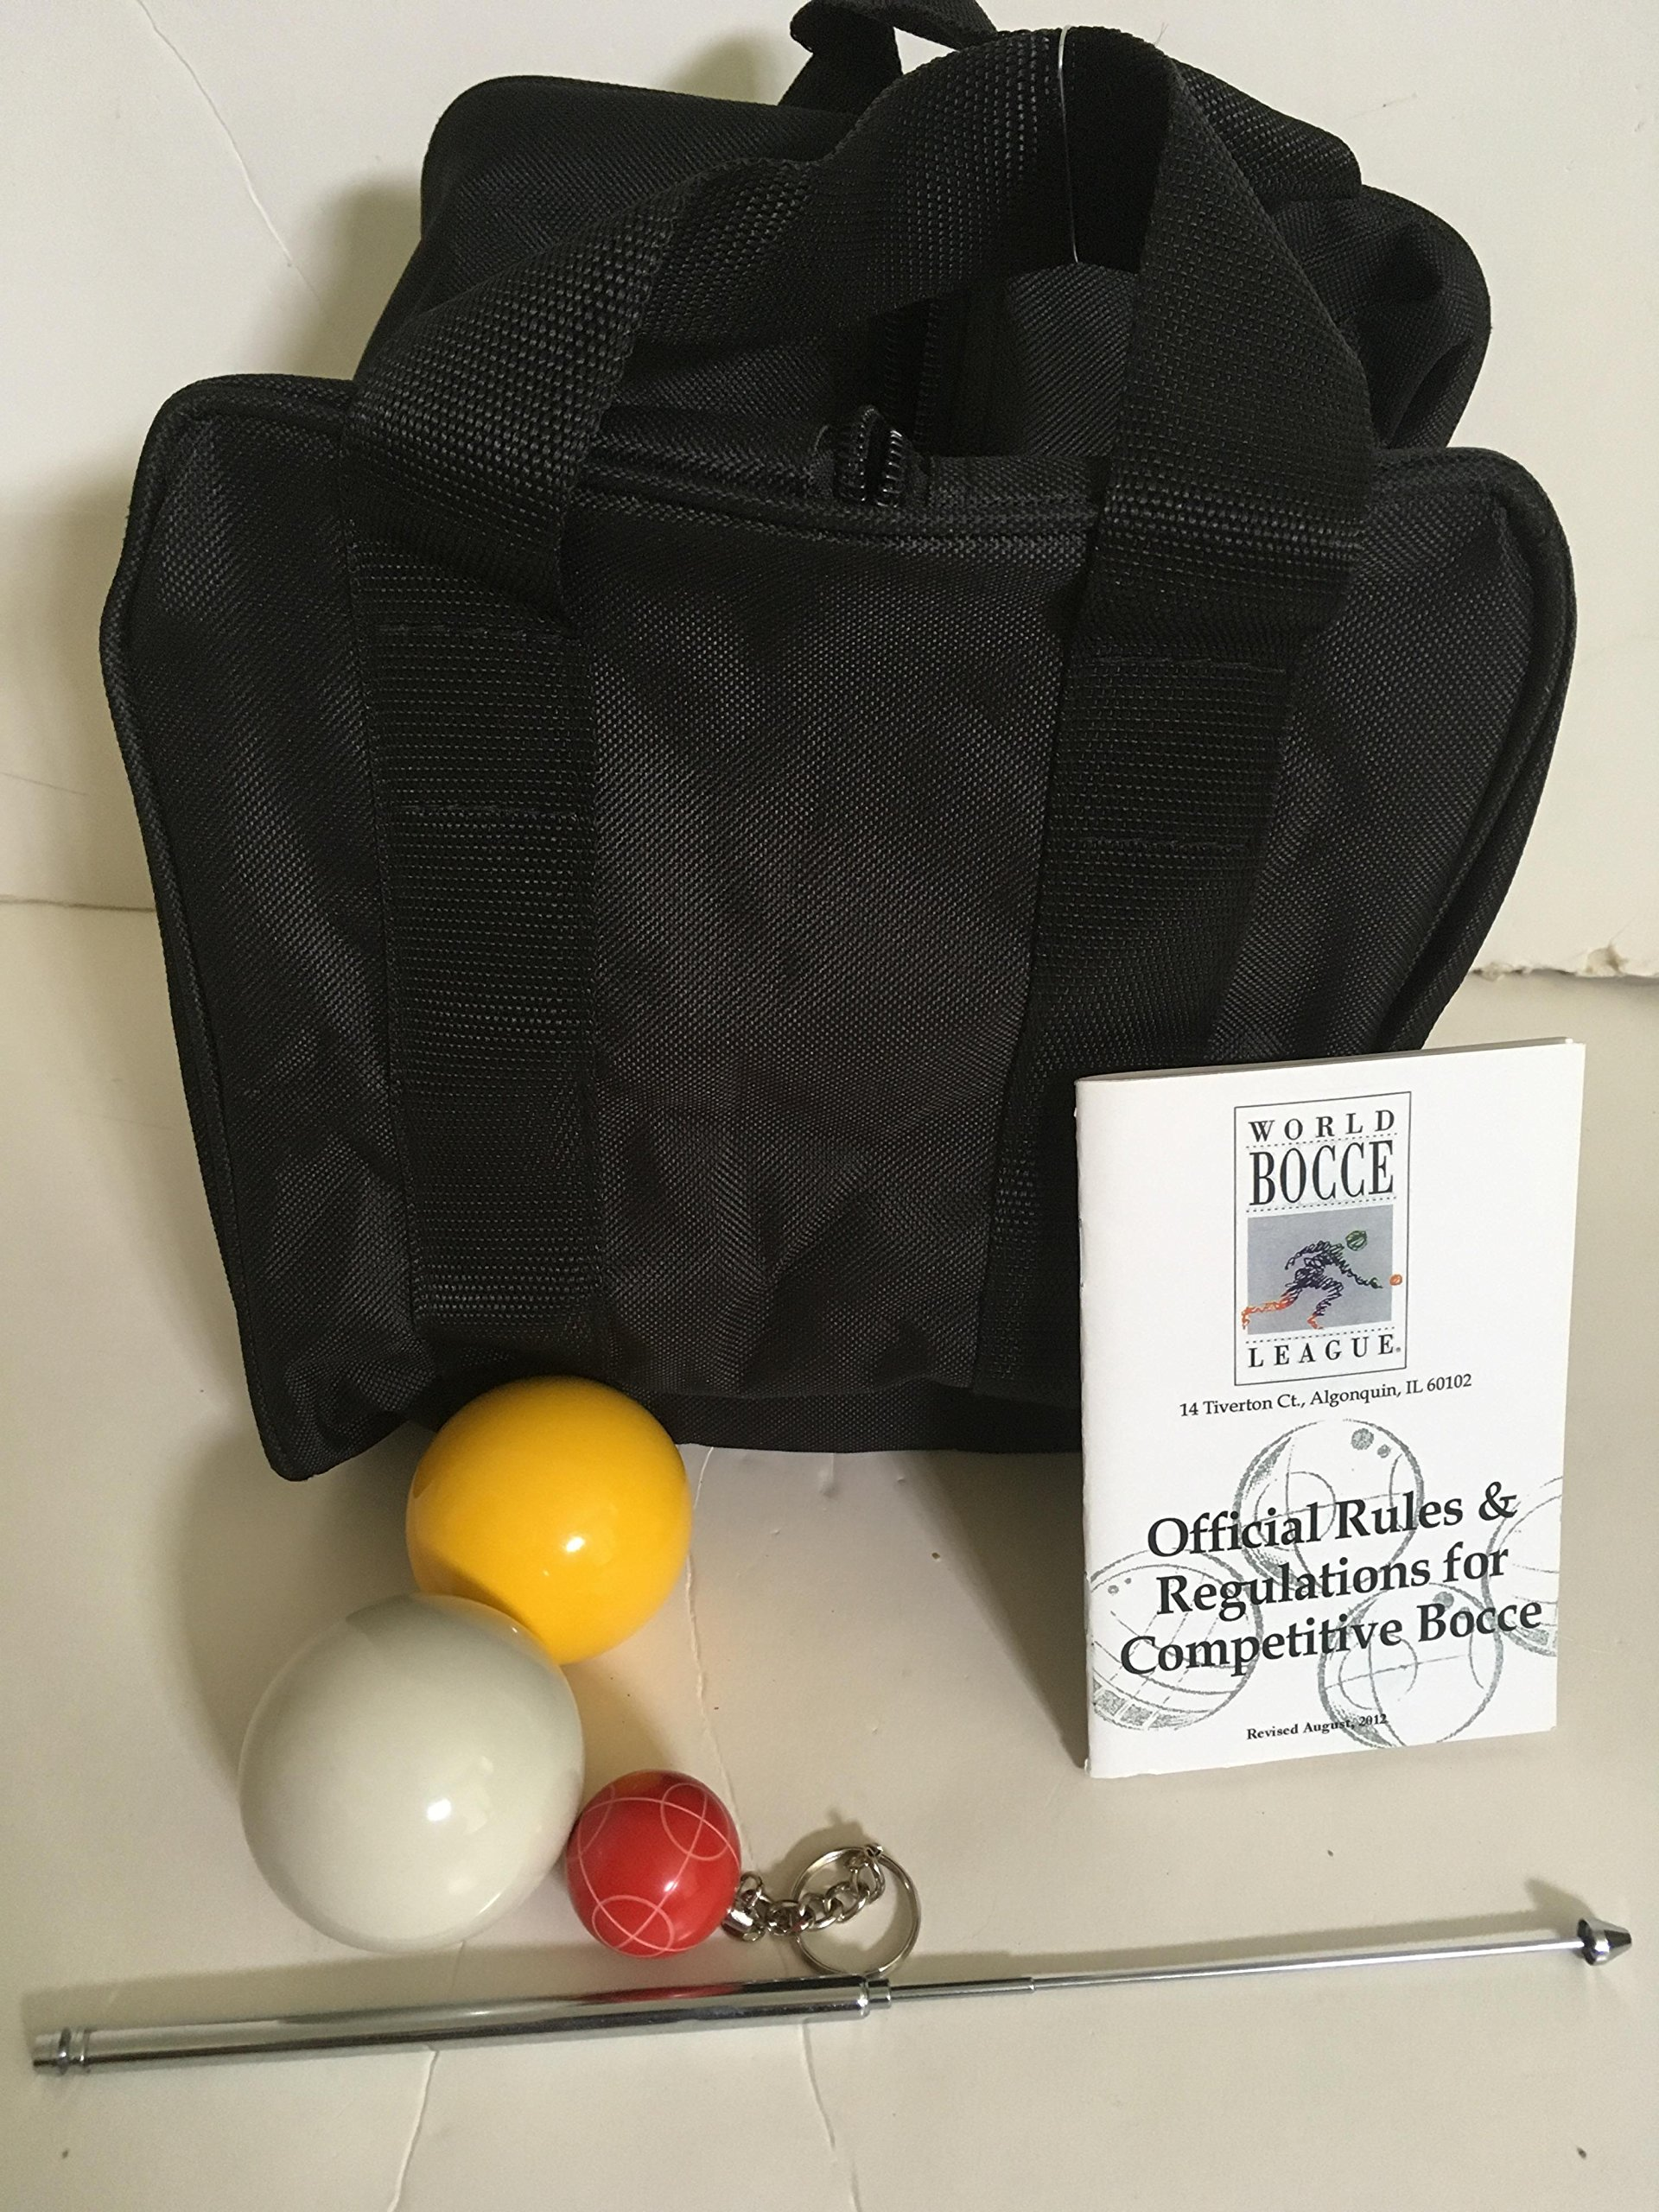 Unique Bocce Ball Accessories Package - Extra Heavy Duty Nylon Bocce Bag (Black with Black Handles), yellow and white pallinas, Extendable Measuring Device, Rule Book and Keychain by BuyBocceBalls